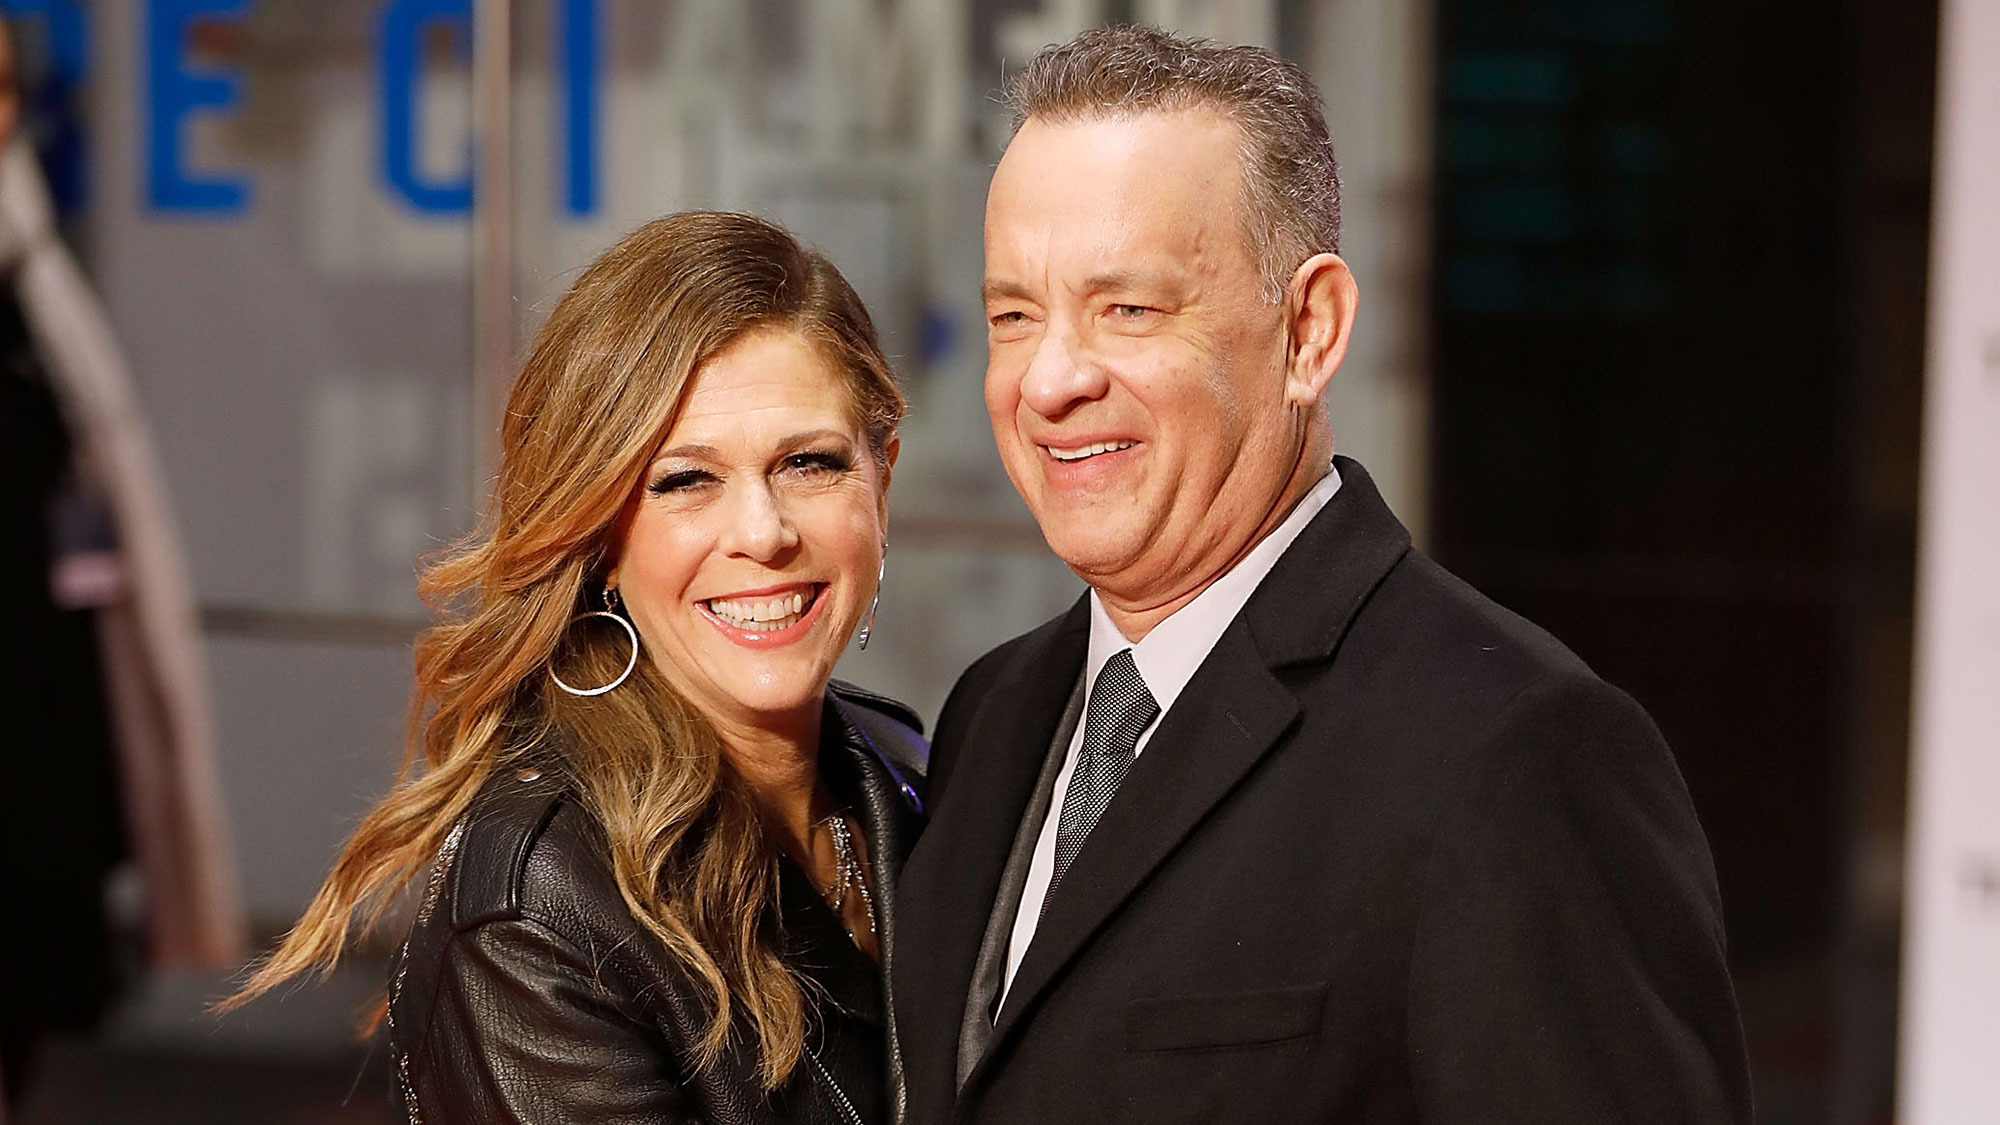 Tom Hanks and Rita Wilson are back in the United States after coronavirus quarantine